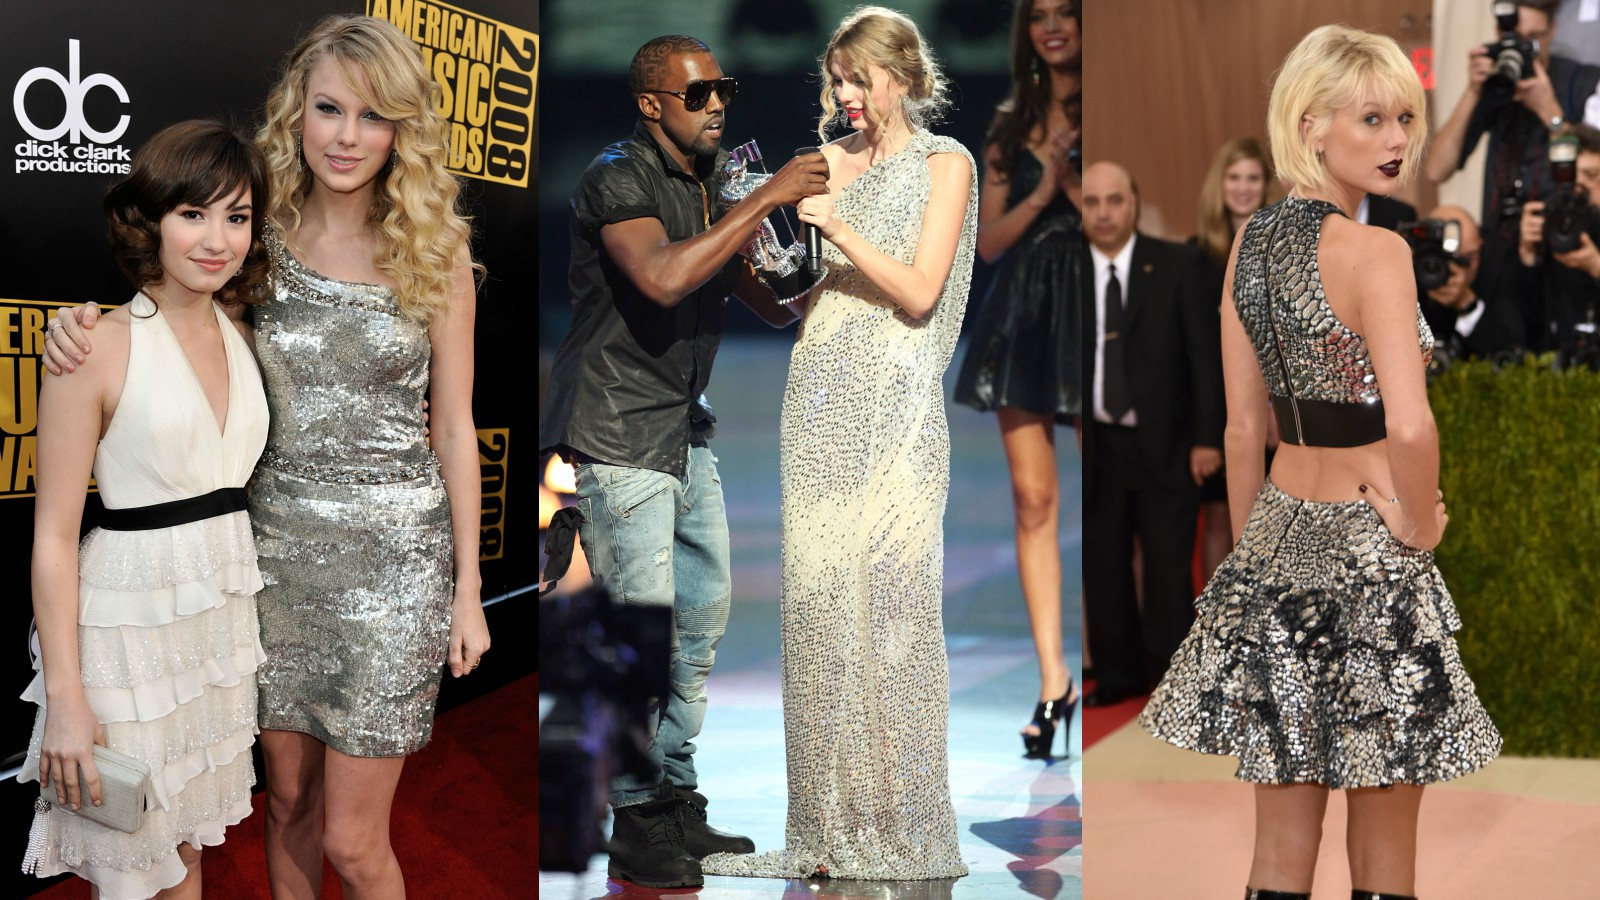 Taylor Swifts Fashion Transformation: Are you Ready For It?